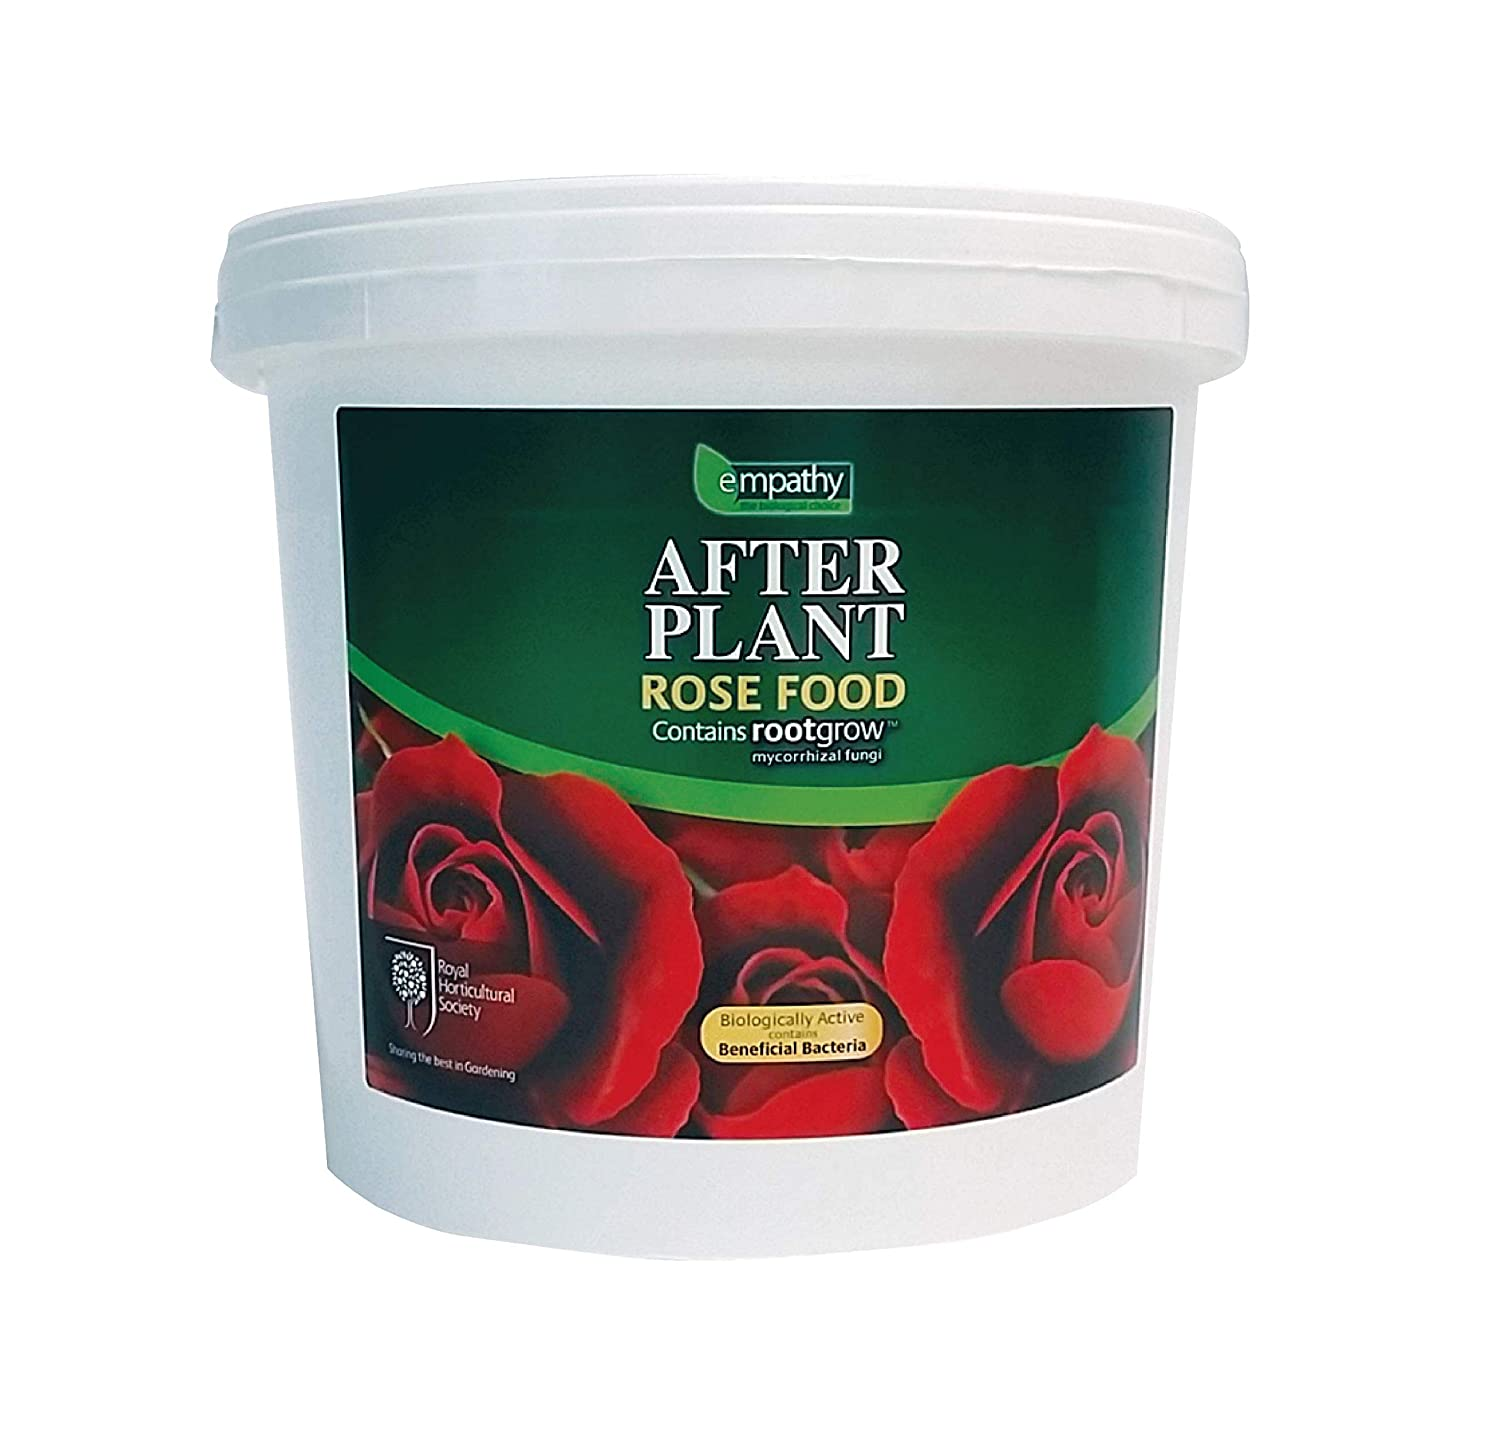 Empathy AfterPlant Rose Food with rootgrow 5kg Plantworks